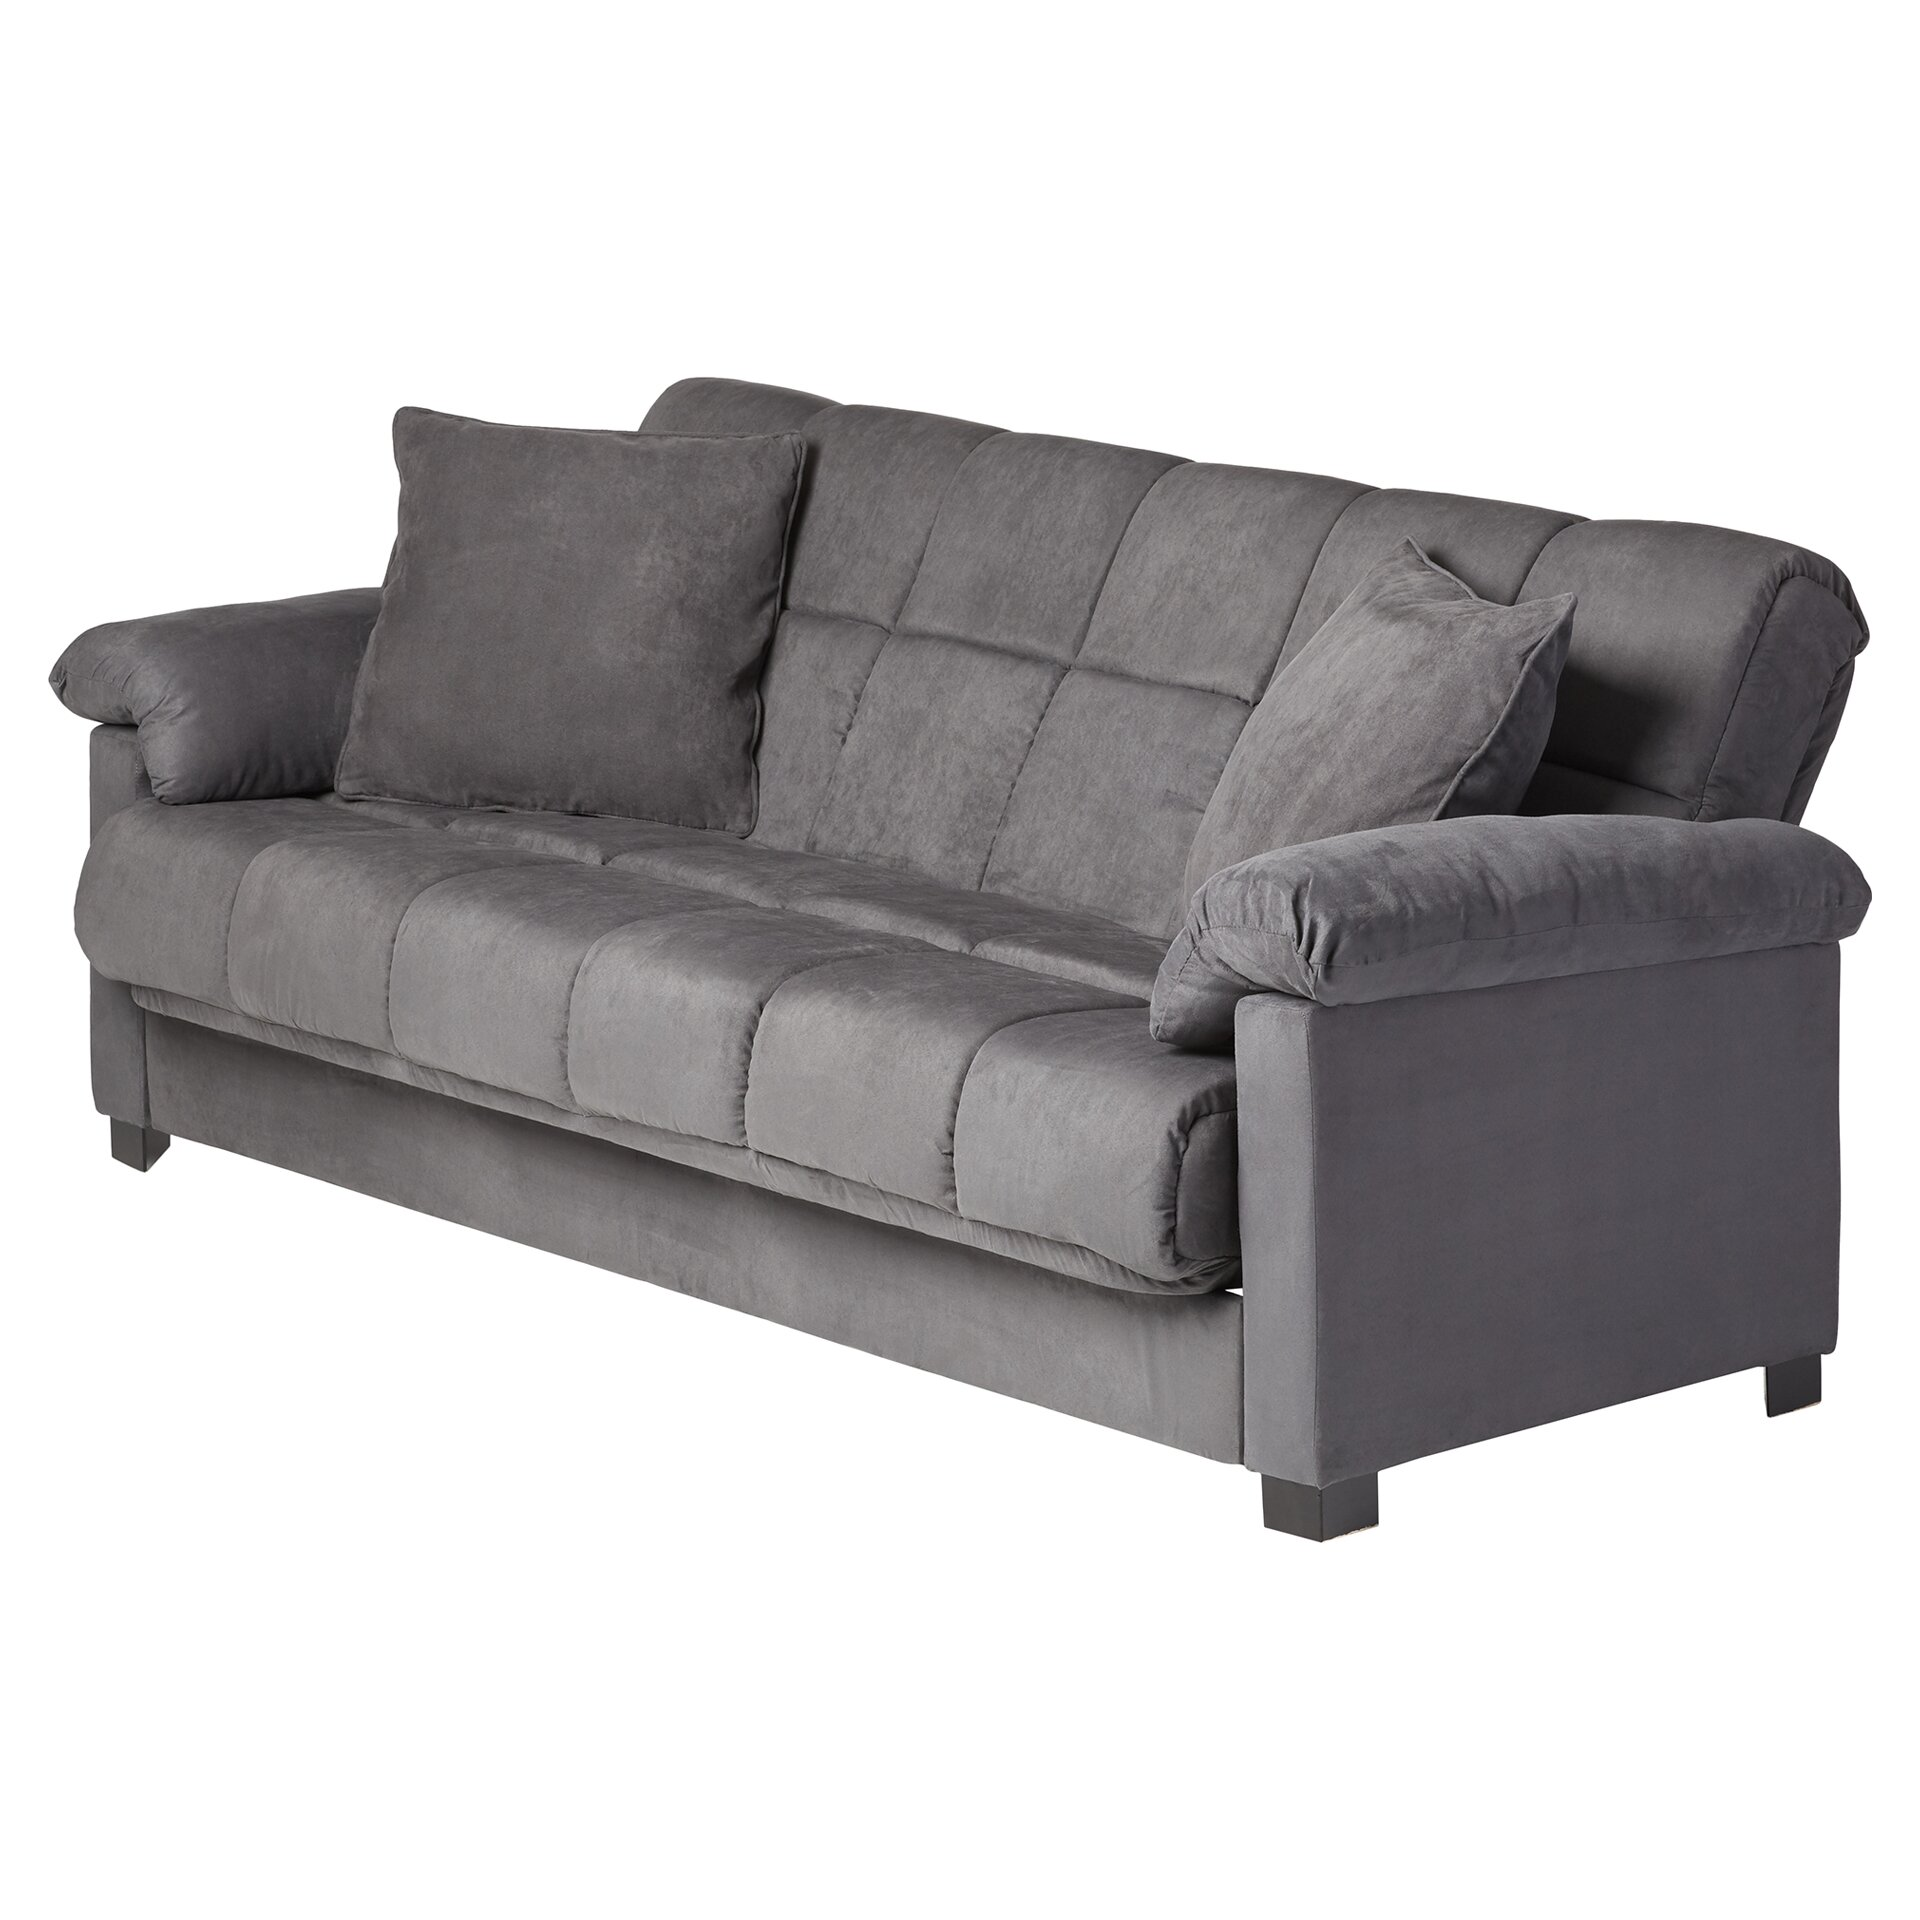 Andover Mills Minter Upholstered Sleeper Sofa Reviews Wayfair